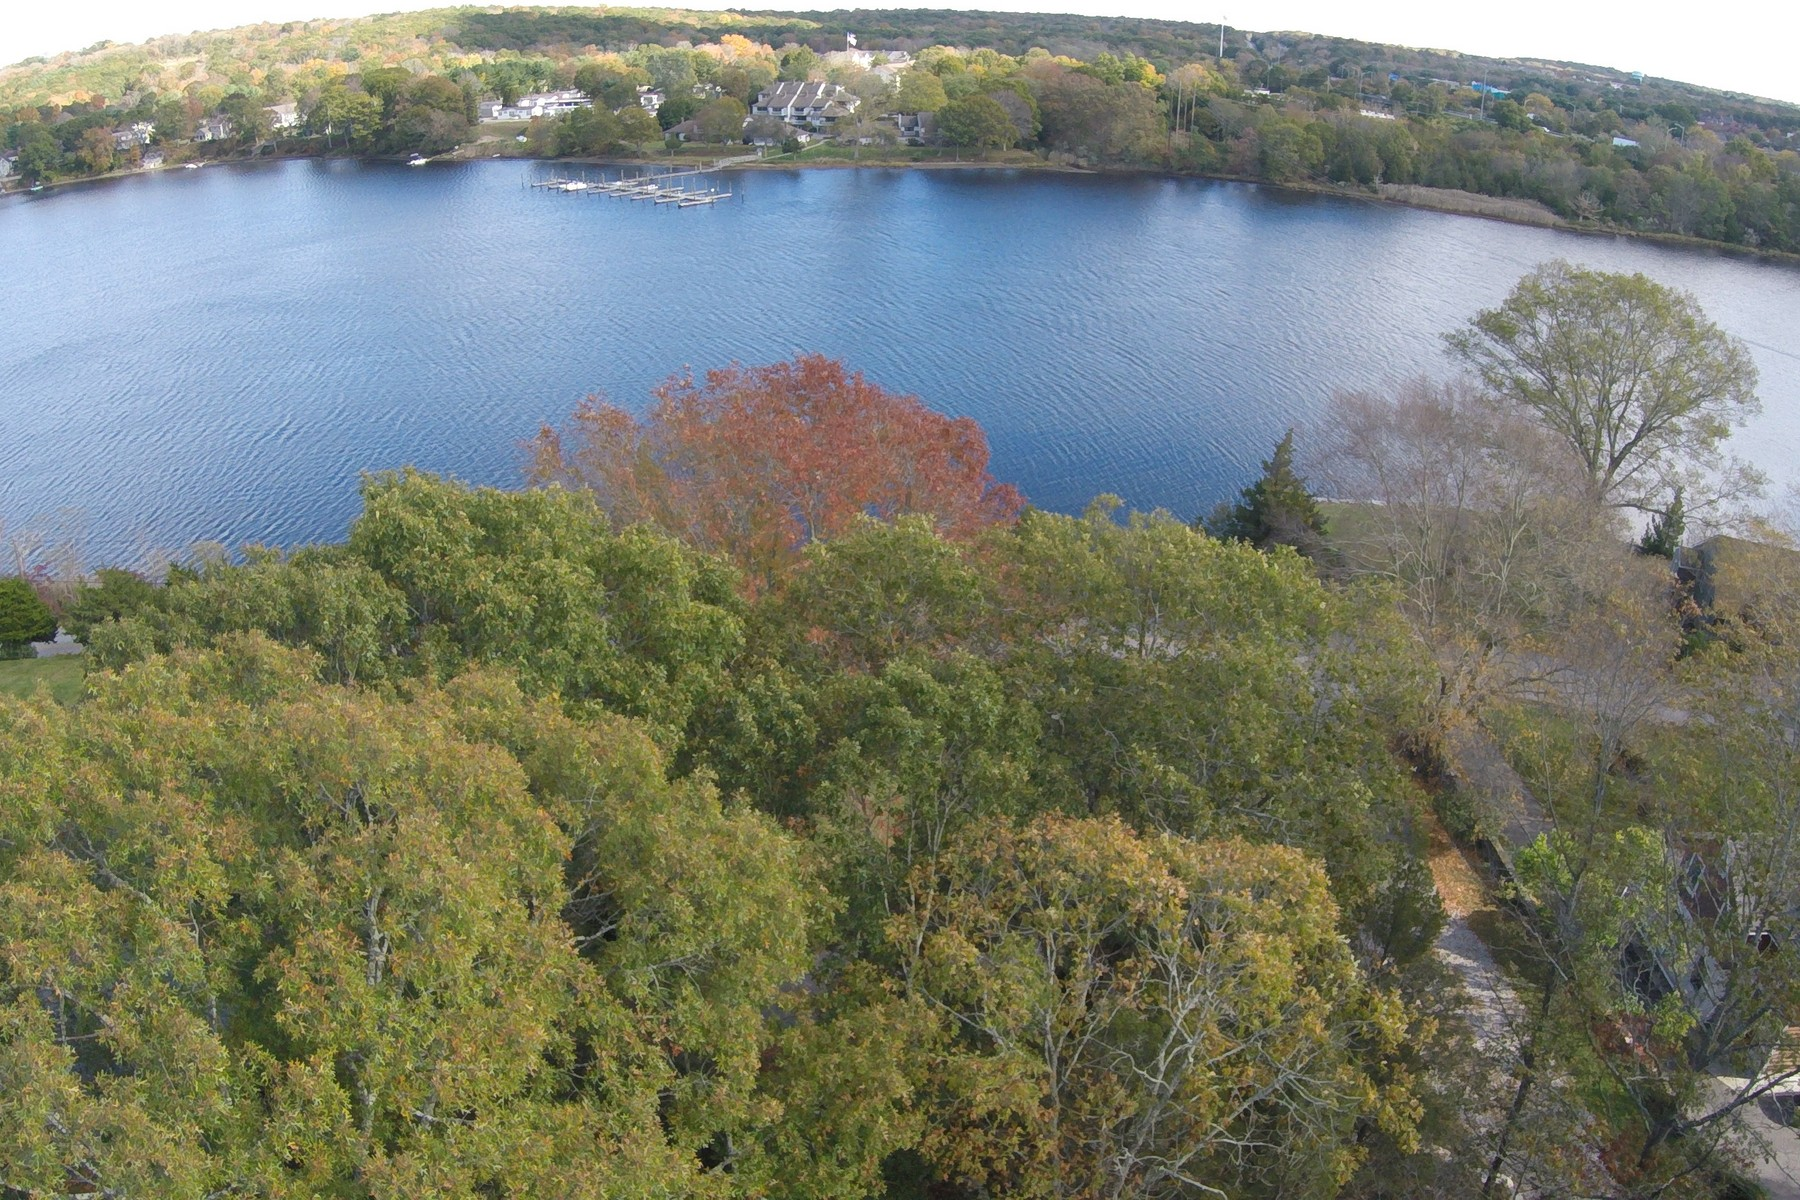 Terreno por un Venta en Amazing River Views 743-1 River Road Groton, Connecticut 06355 Estados Unidos